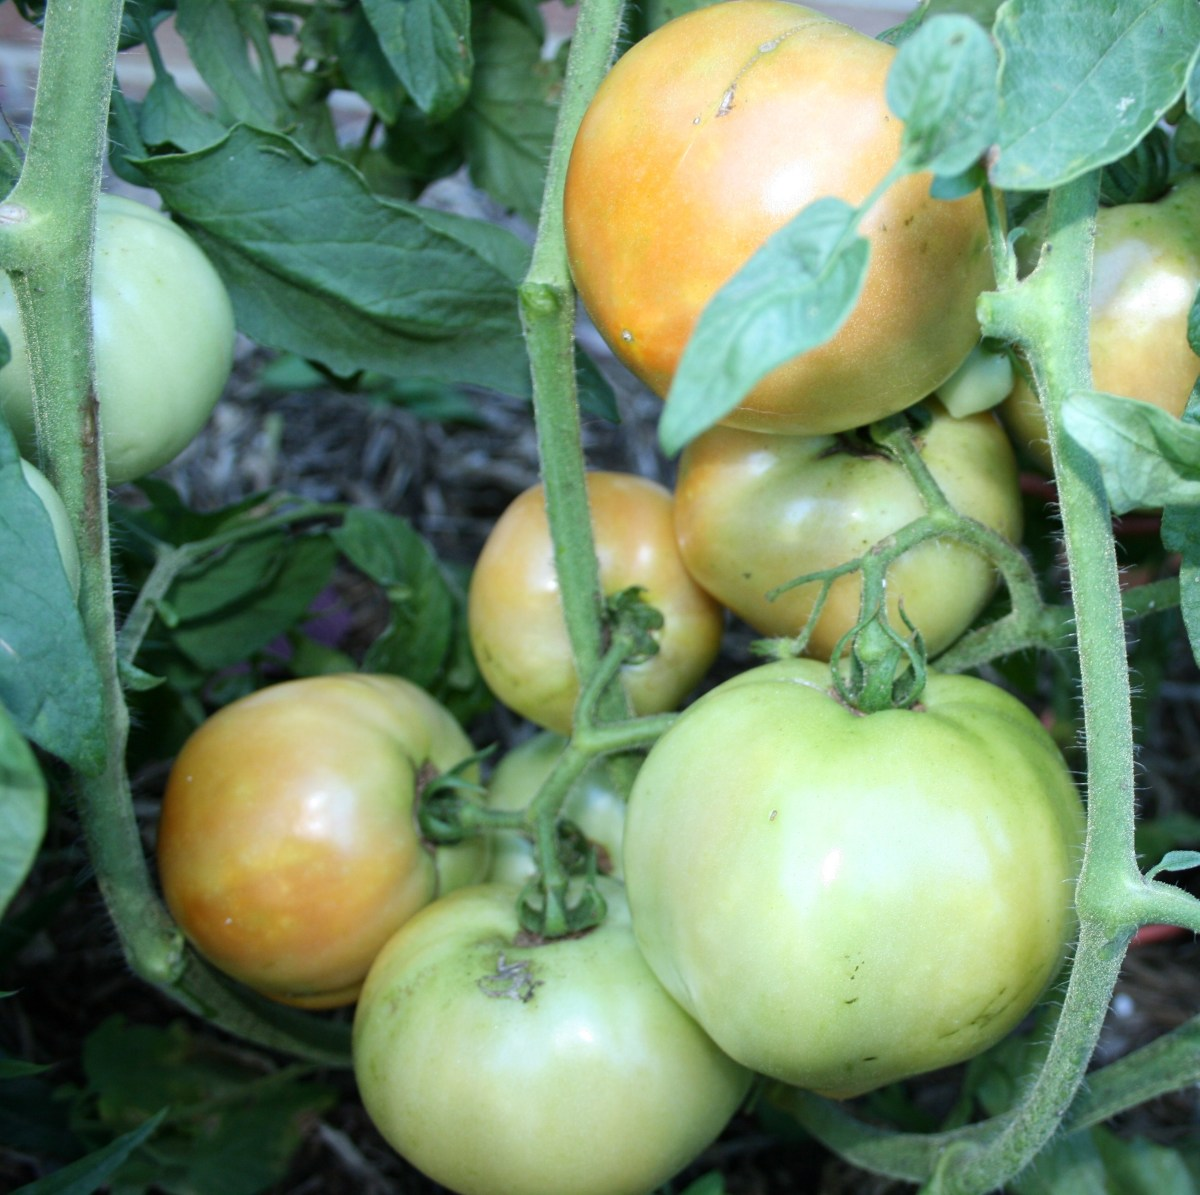 Large varieties of tomato plants can produce 8 pounds of fruit or more at one time.